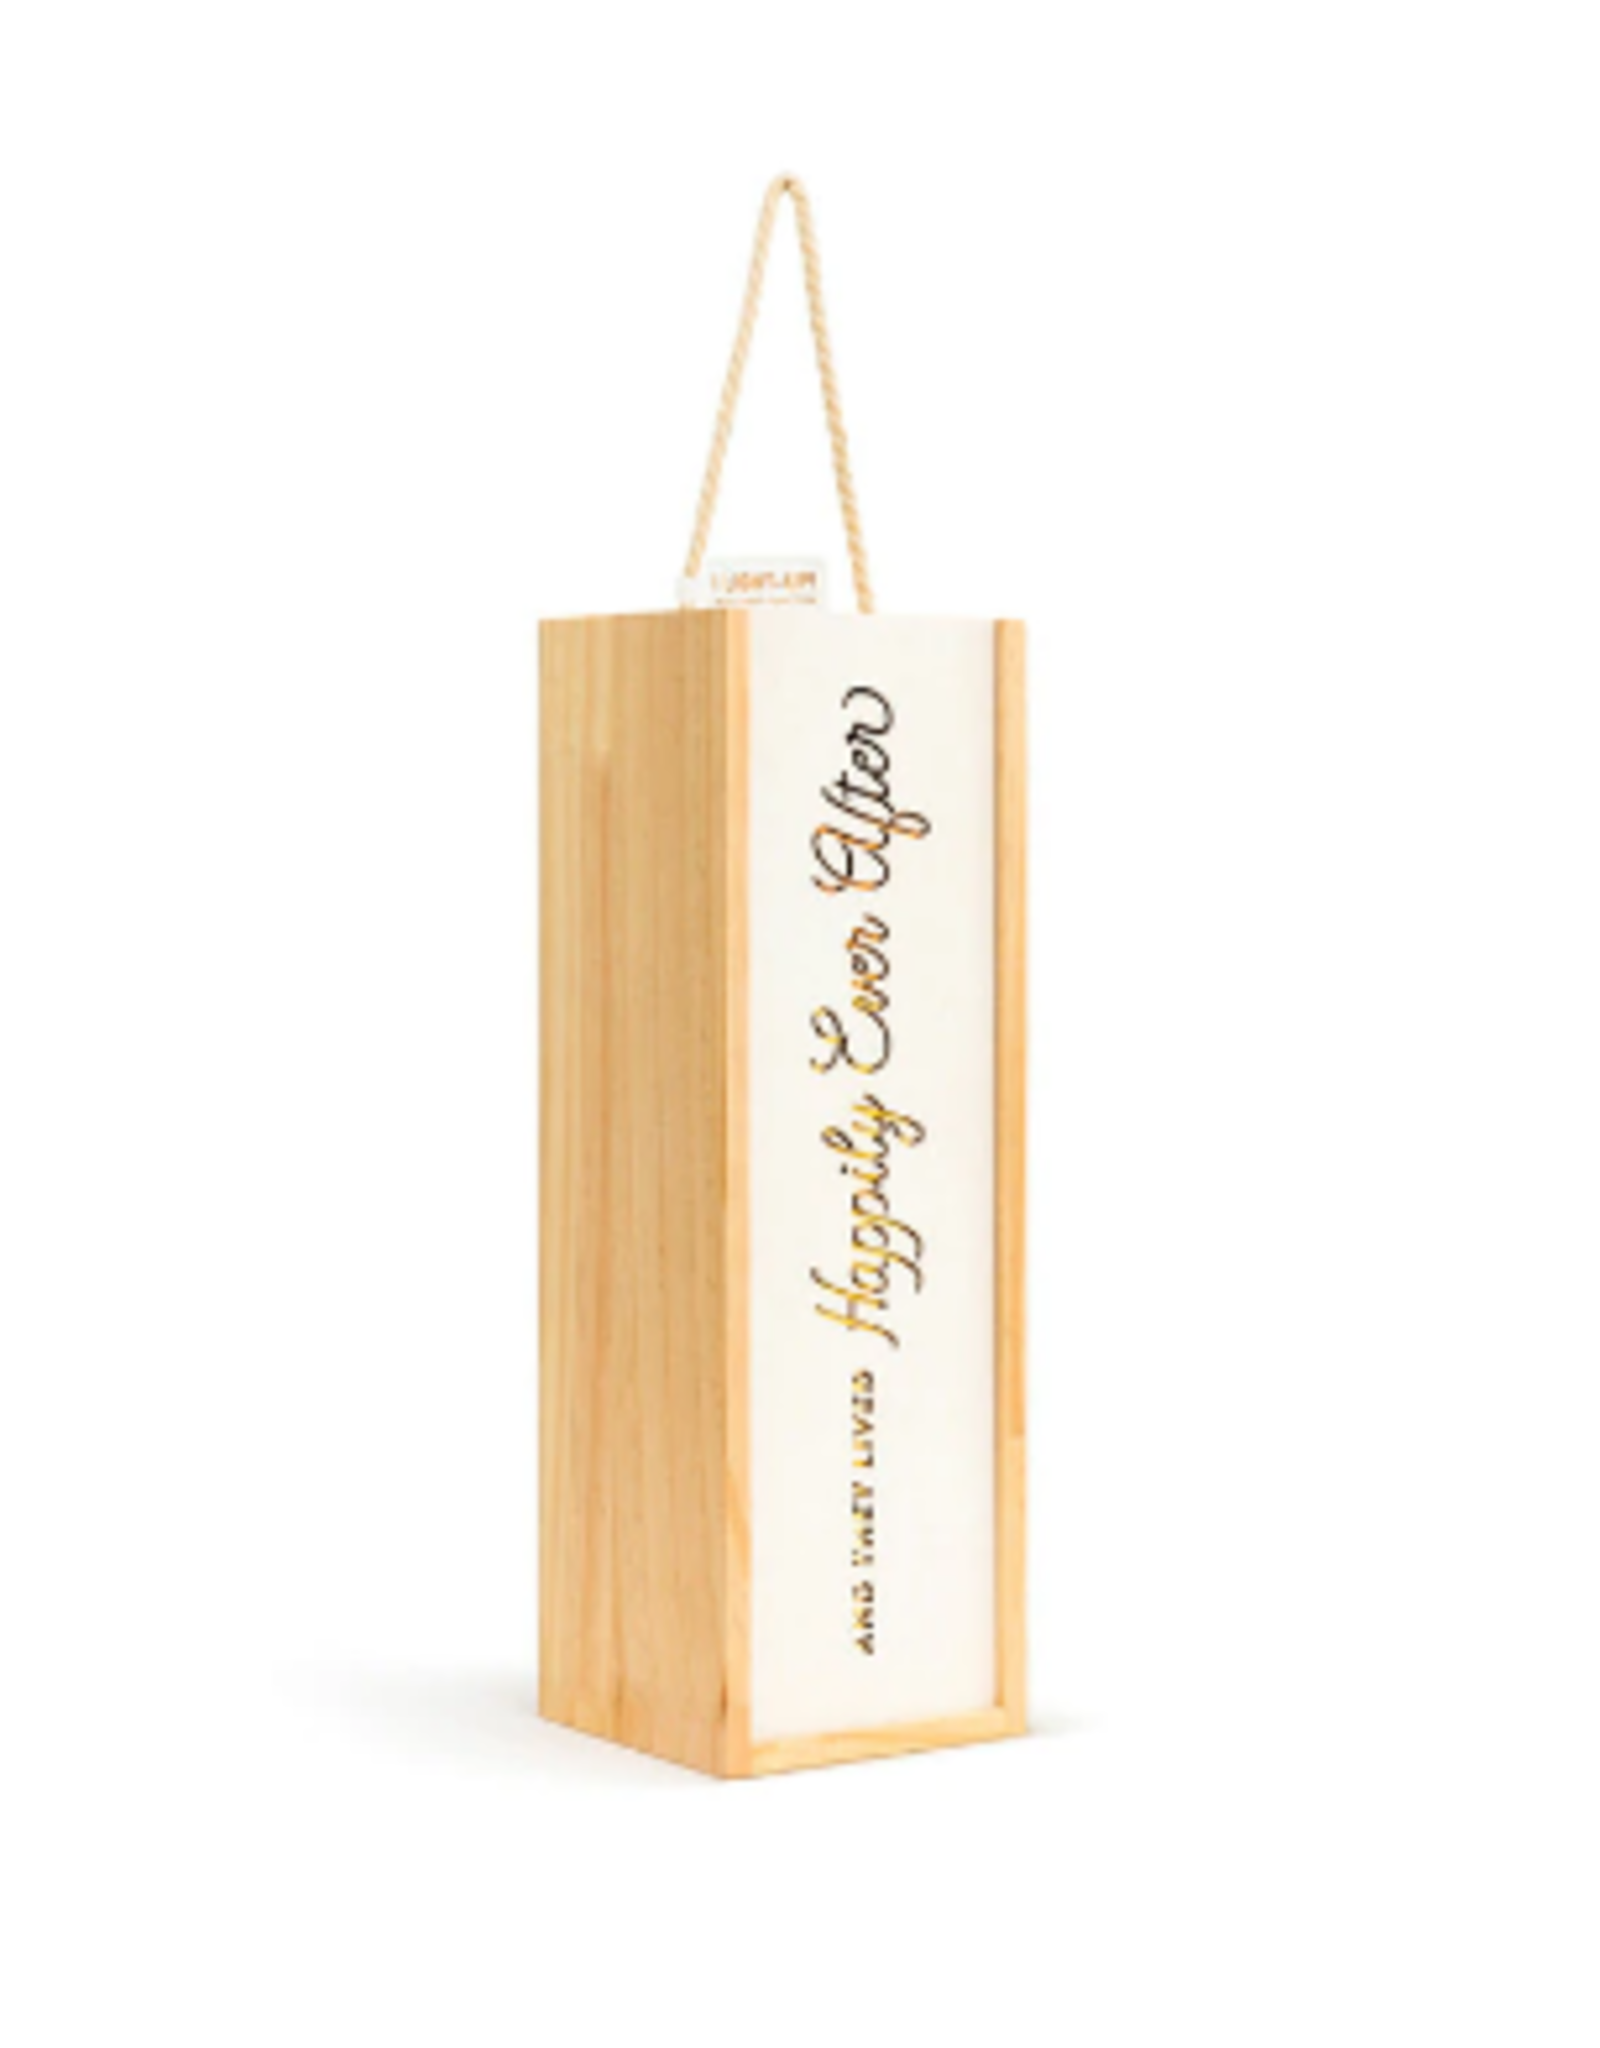 Lantern/Wine Box, Lived Happily Ever After